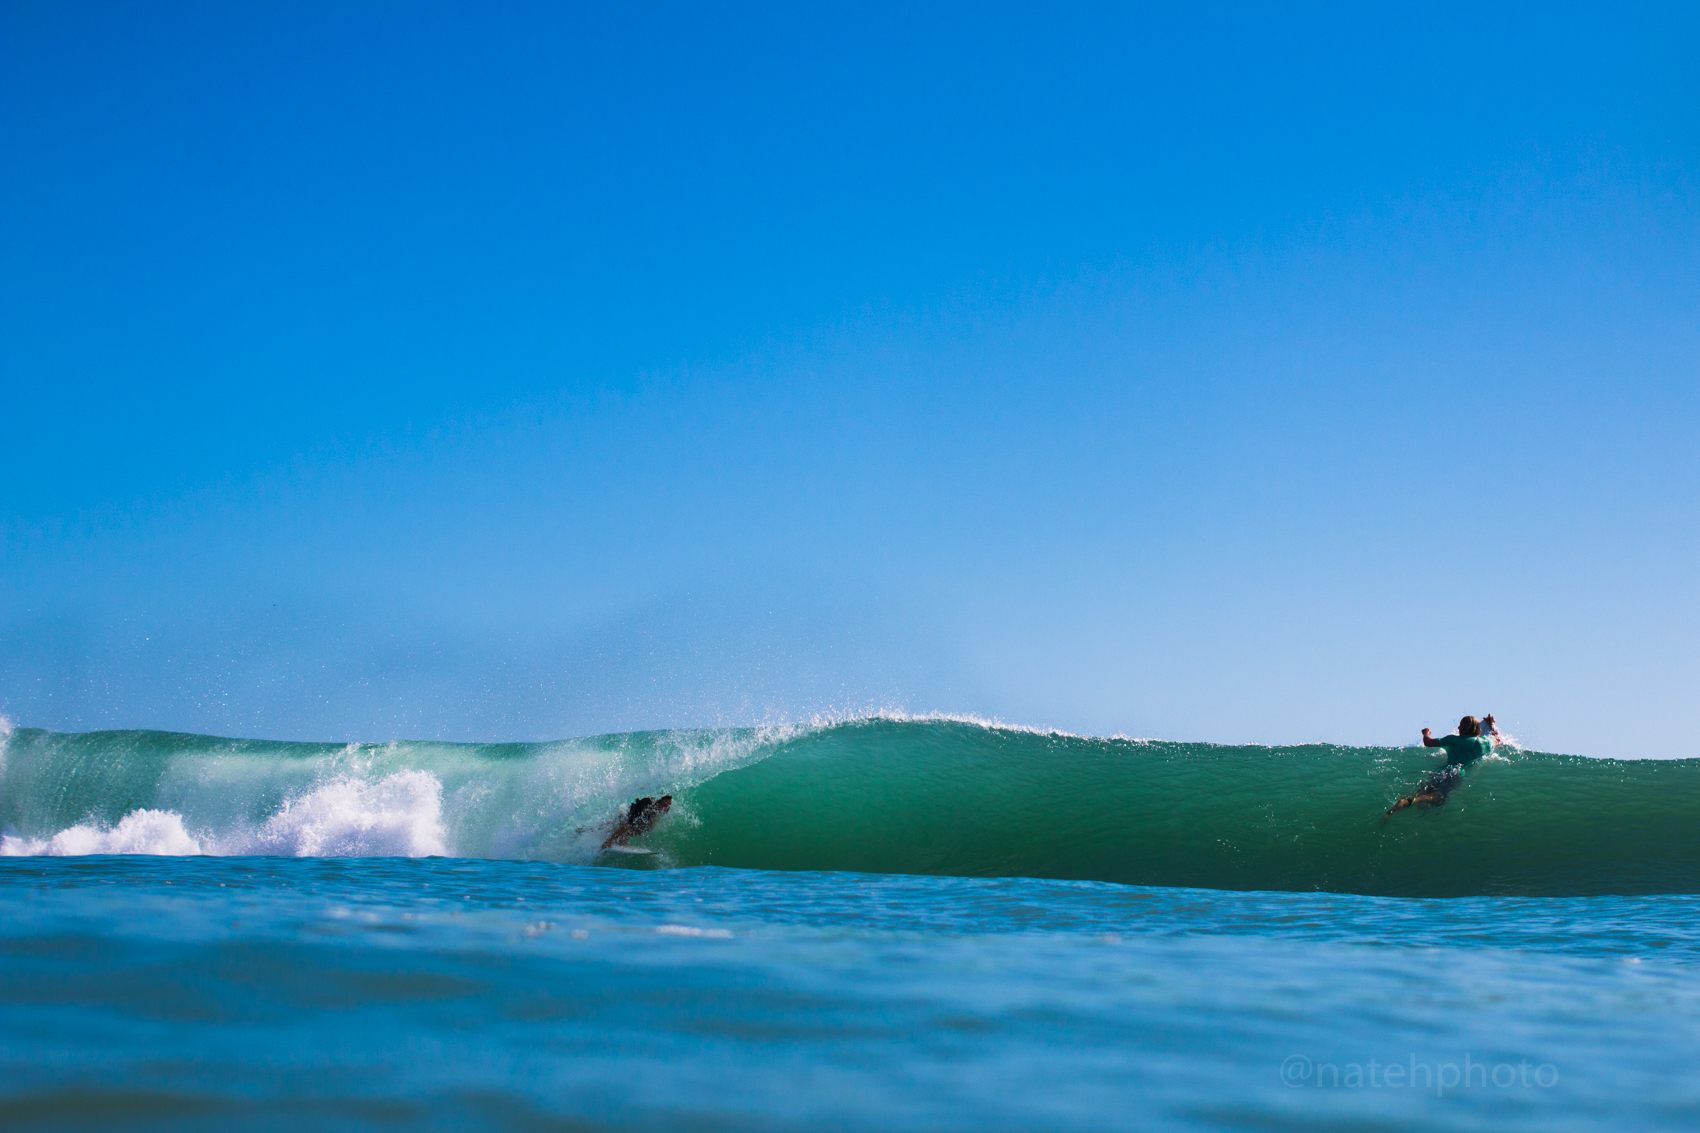 Chauncey Robinson in the Barrel at Spanish House, FL. Photo by Nathaniel Harrington (natehphoto)